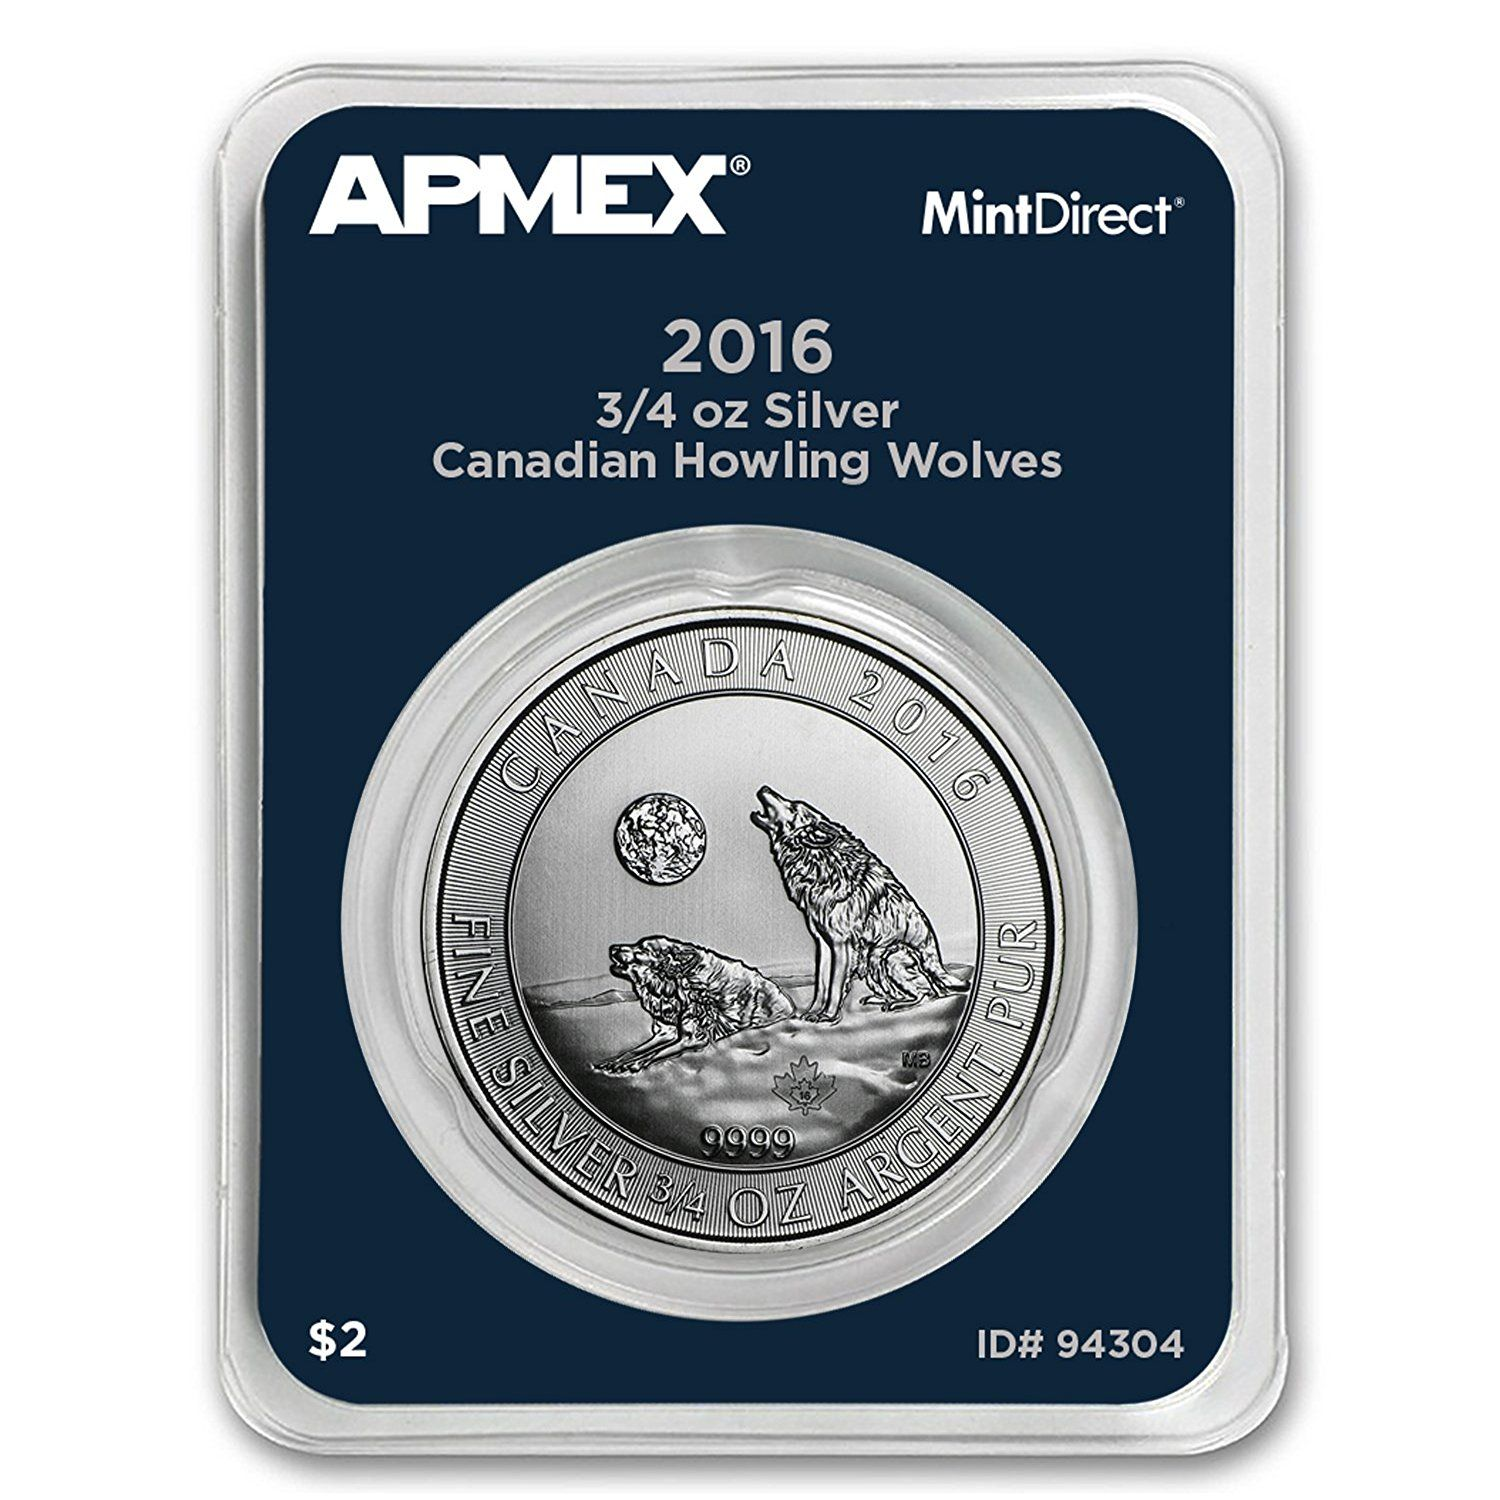 2016 Ca Canada 3 4 Oz Silver Howling Wolves Apmex Mintdirecta Single Silver Brilliant Uncirculated Collectiblecoins Apmex Silver Coins For Sale